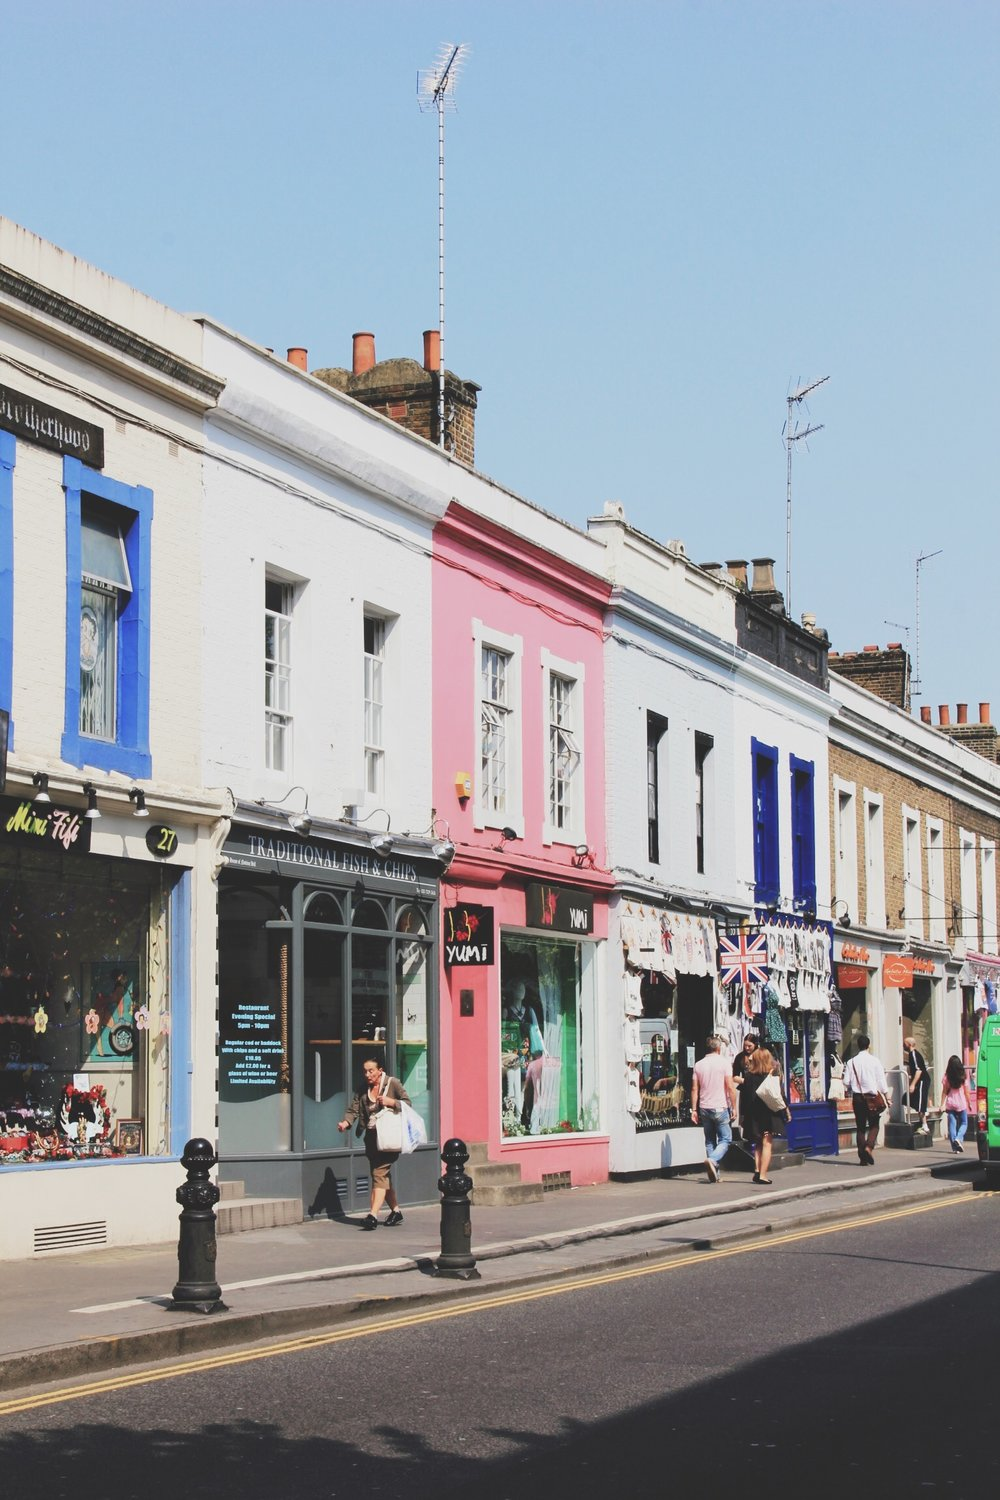 nottingHILL-travel-onmyway.jpg